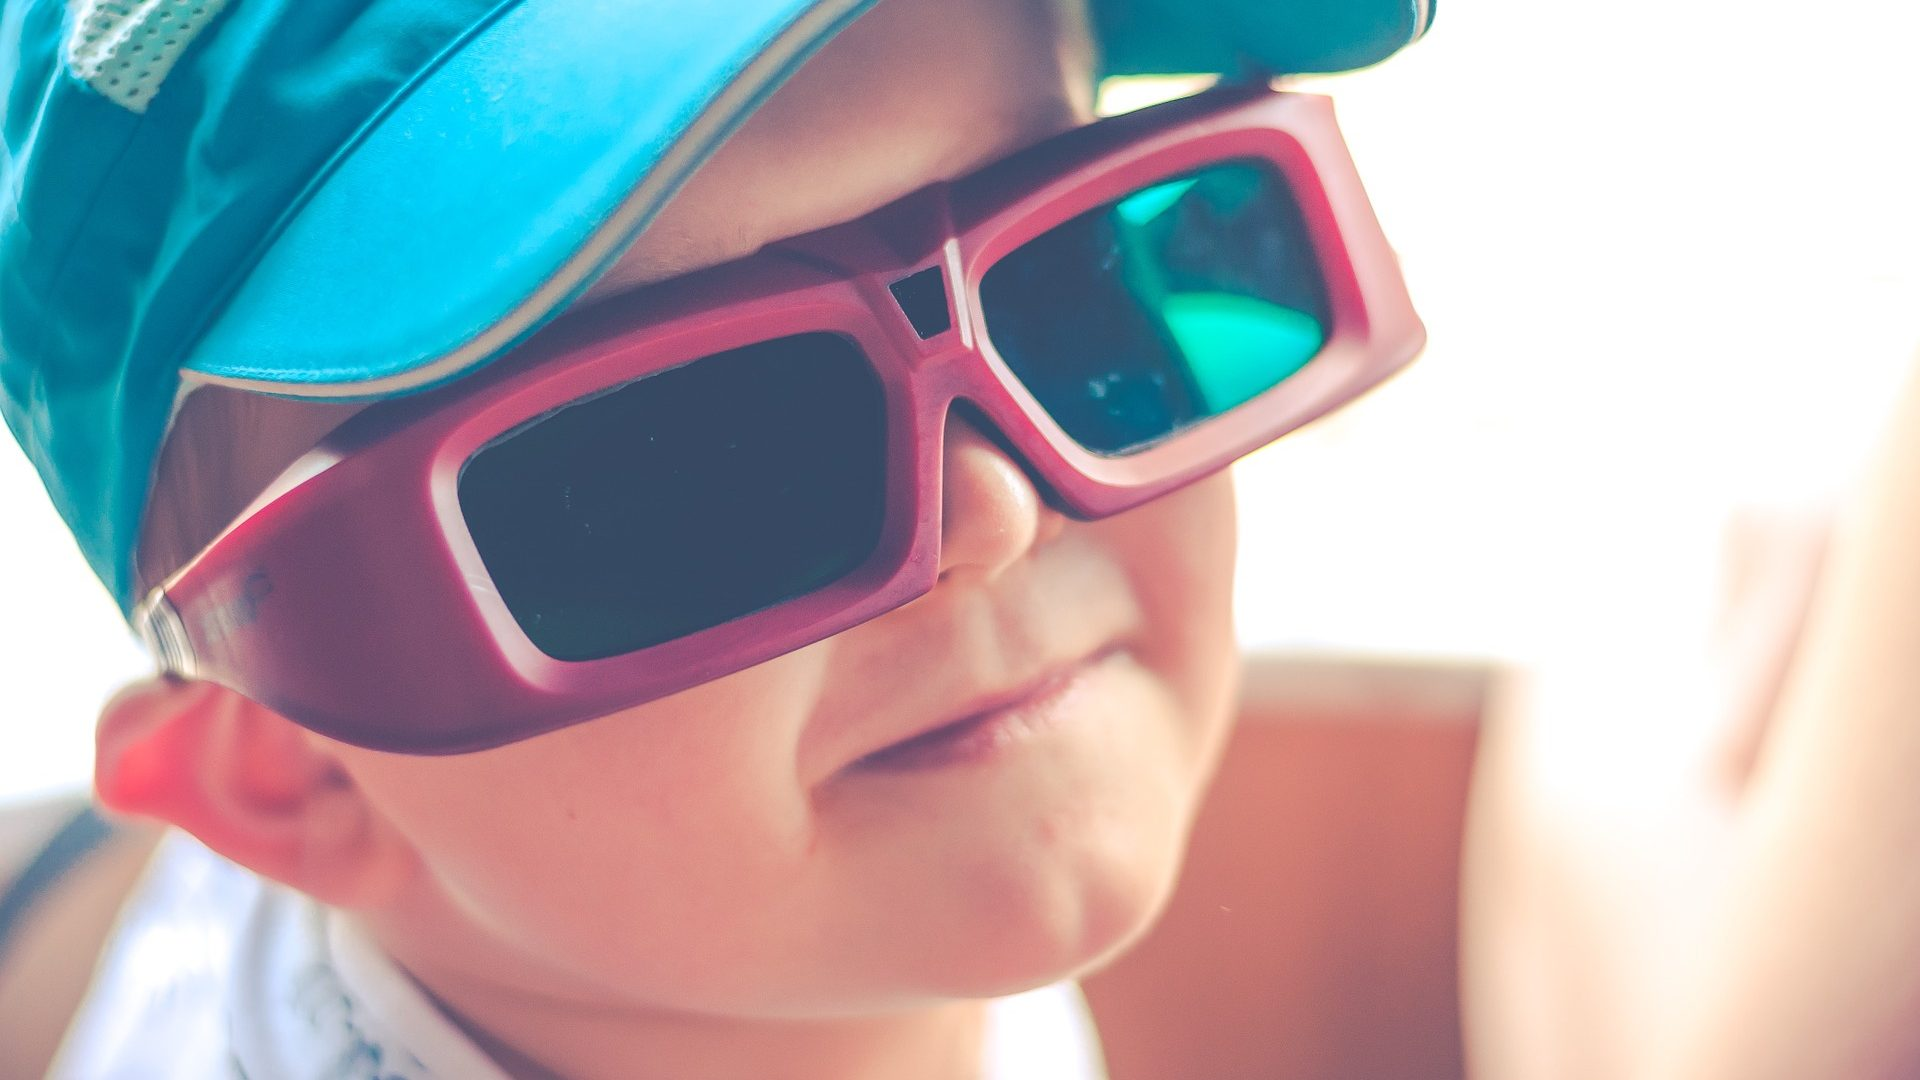 Image: a child wearing 3D glasses